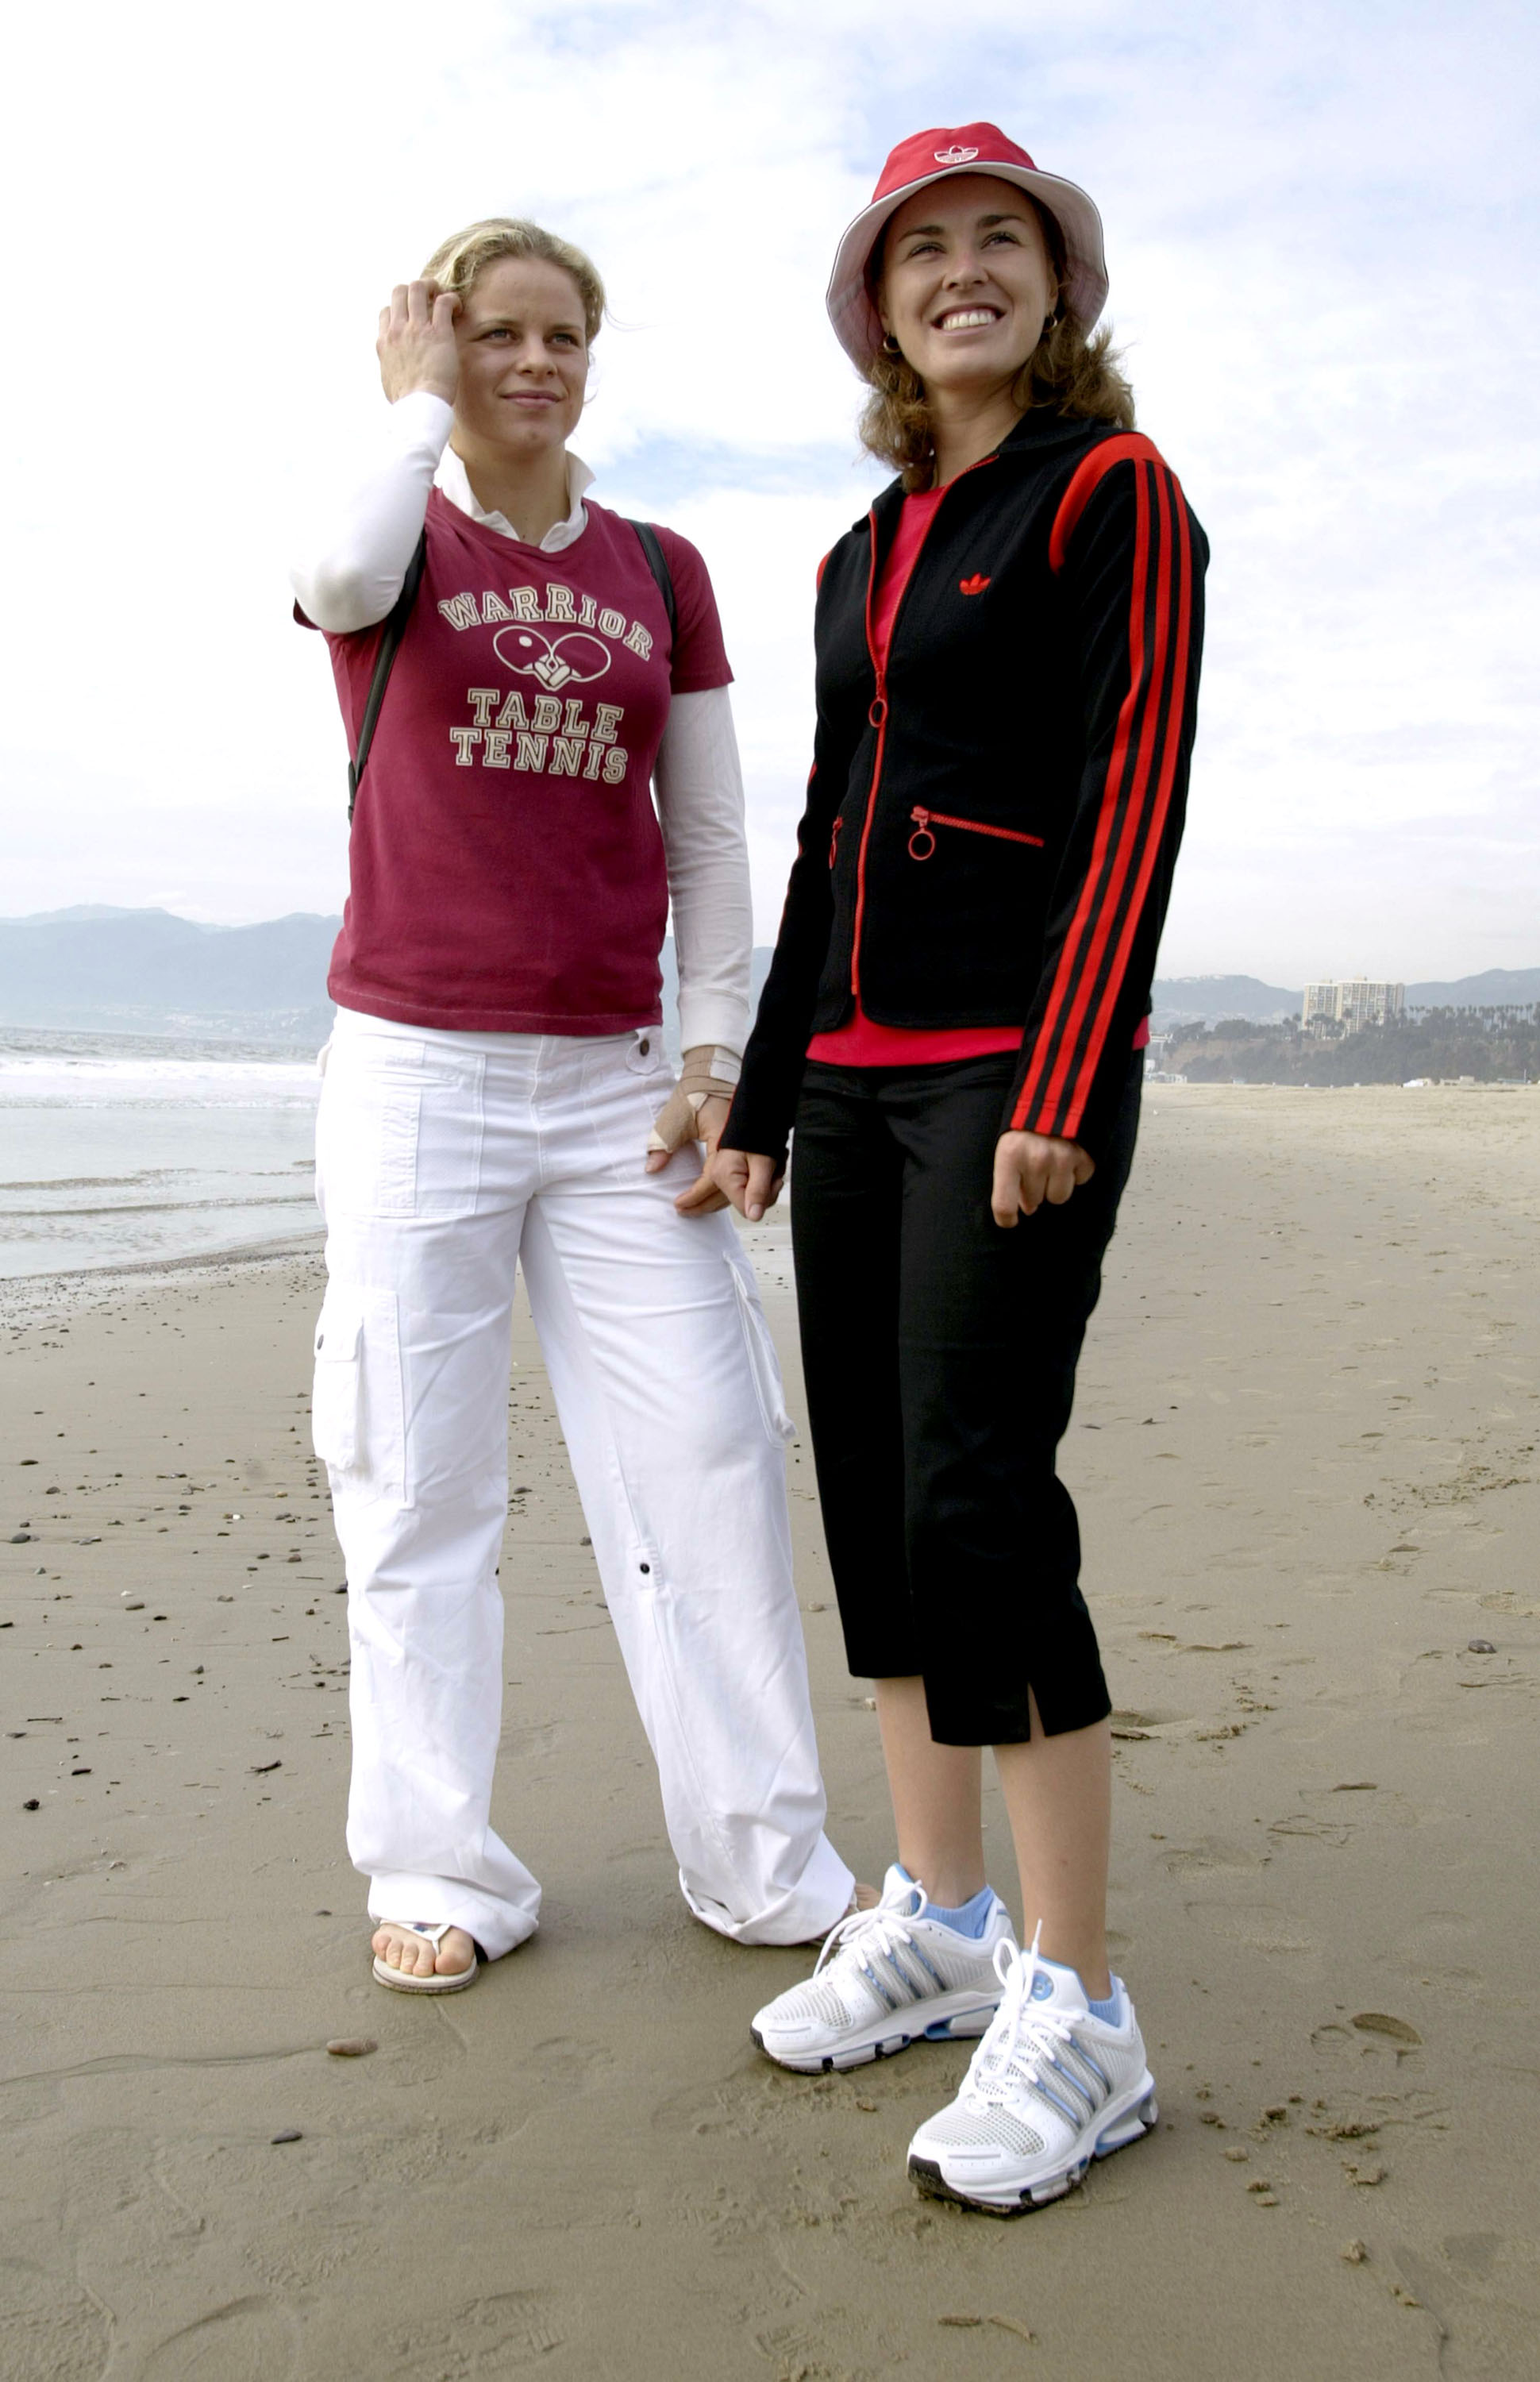 Clijsters and Hingis hanging out at the beach.